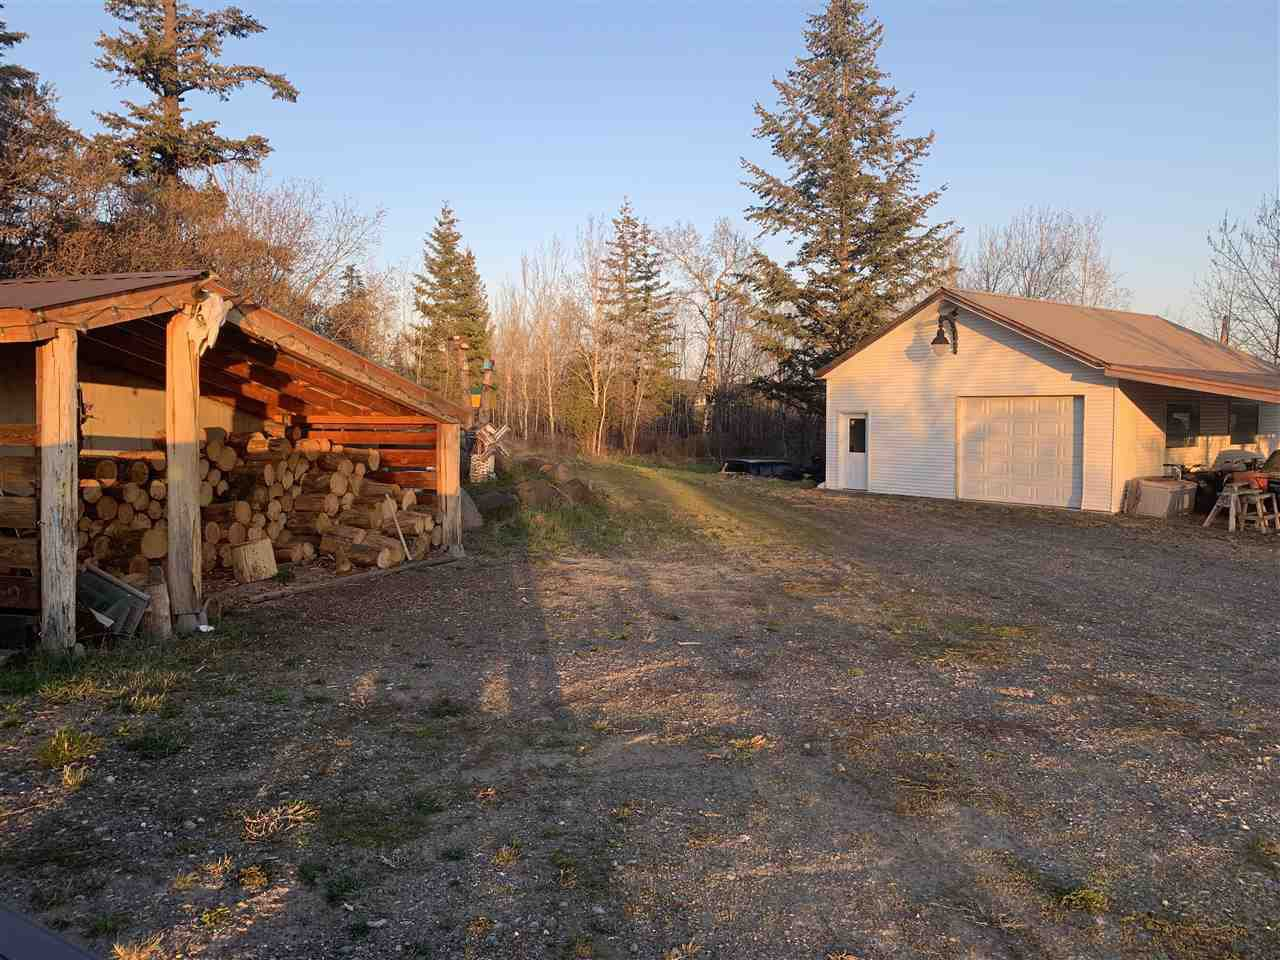 Photo 18: Photos: 3002 GOLD DIGGER Drive: 150 Mile House House for sale (Williams Lake (Zone 27))  : MLS®# R2430826